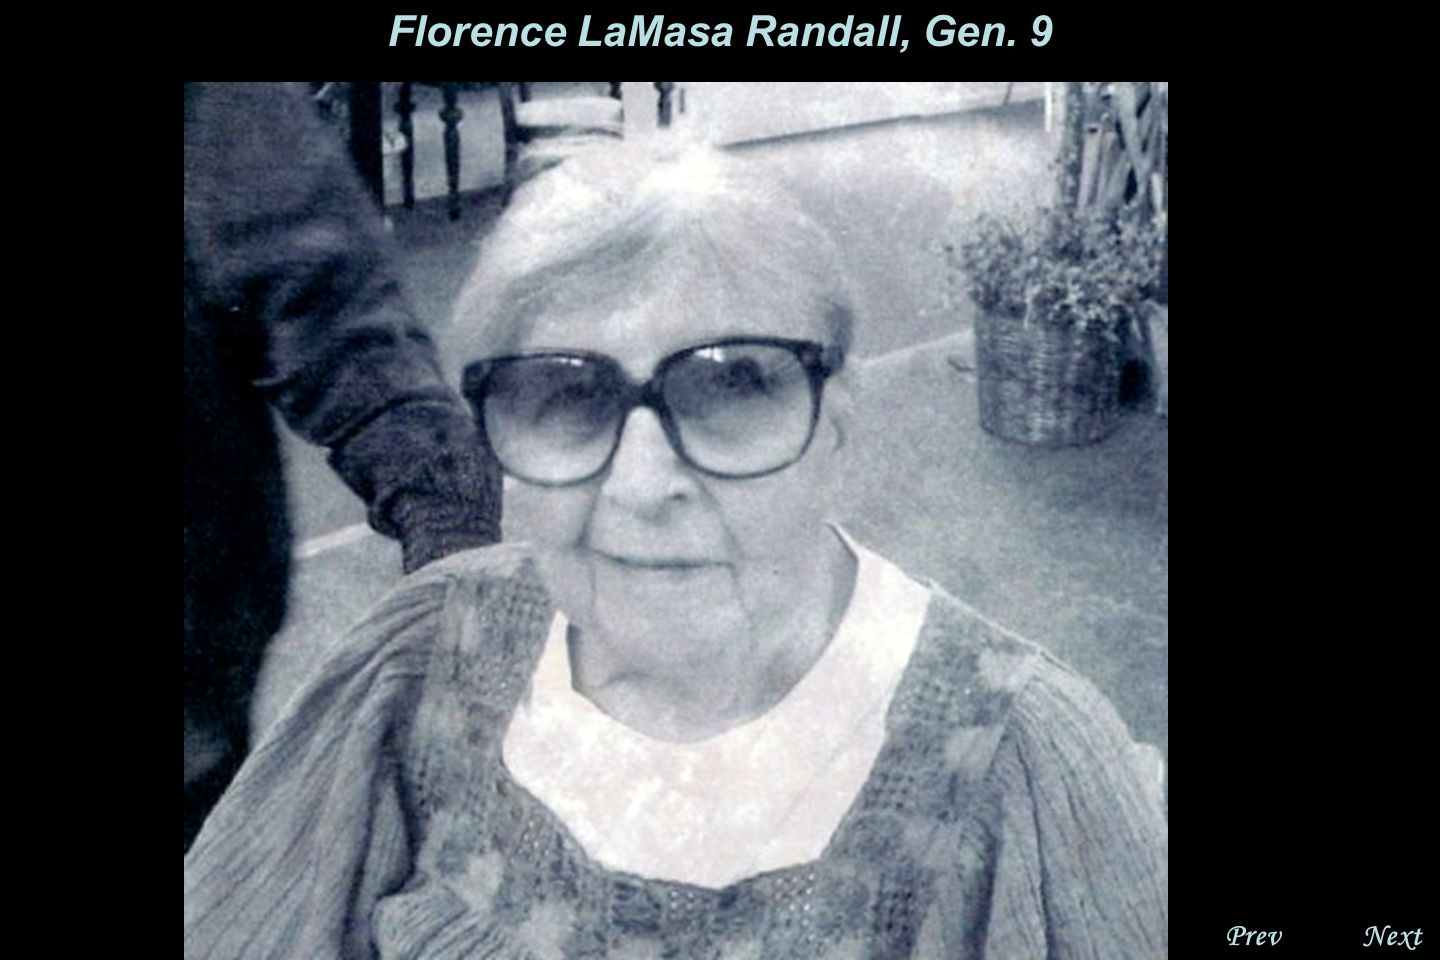 NextPrev. Florence LaMasa Randall, Gen. 9 Clyde and Florence had 2 sons, Lawrence and Philip.